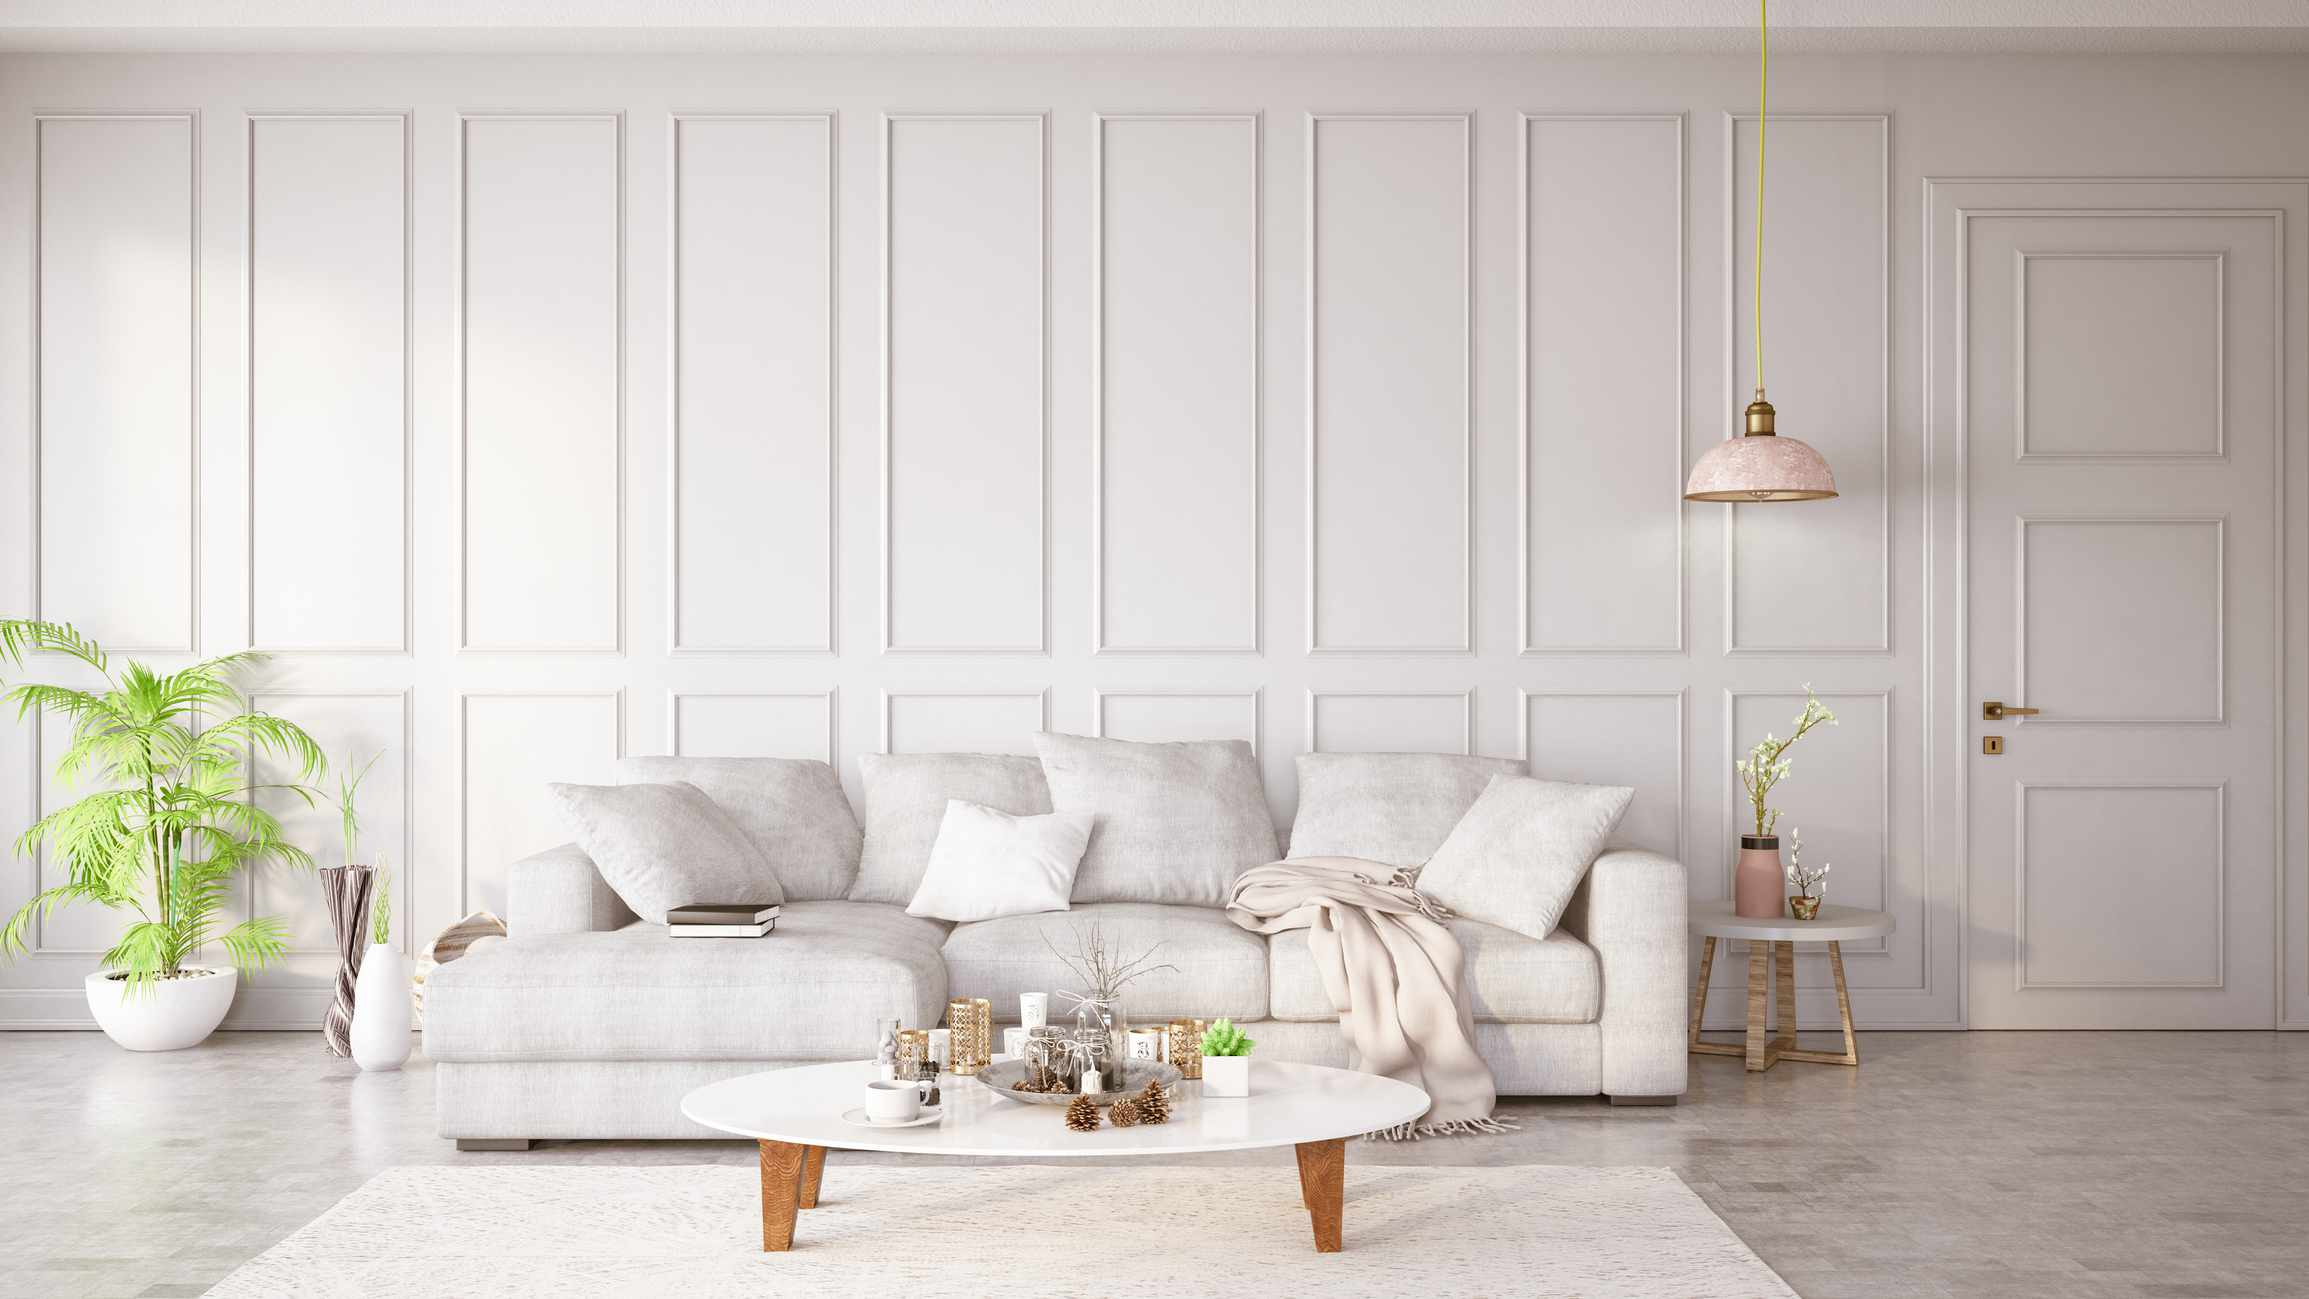 A white sofa in a white-washed space